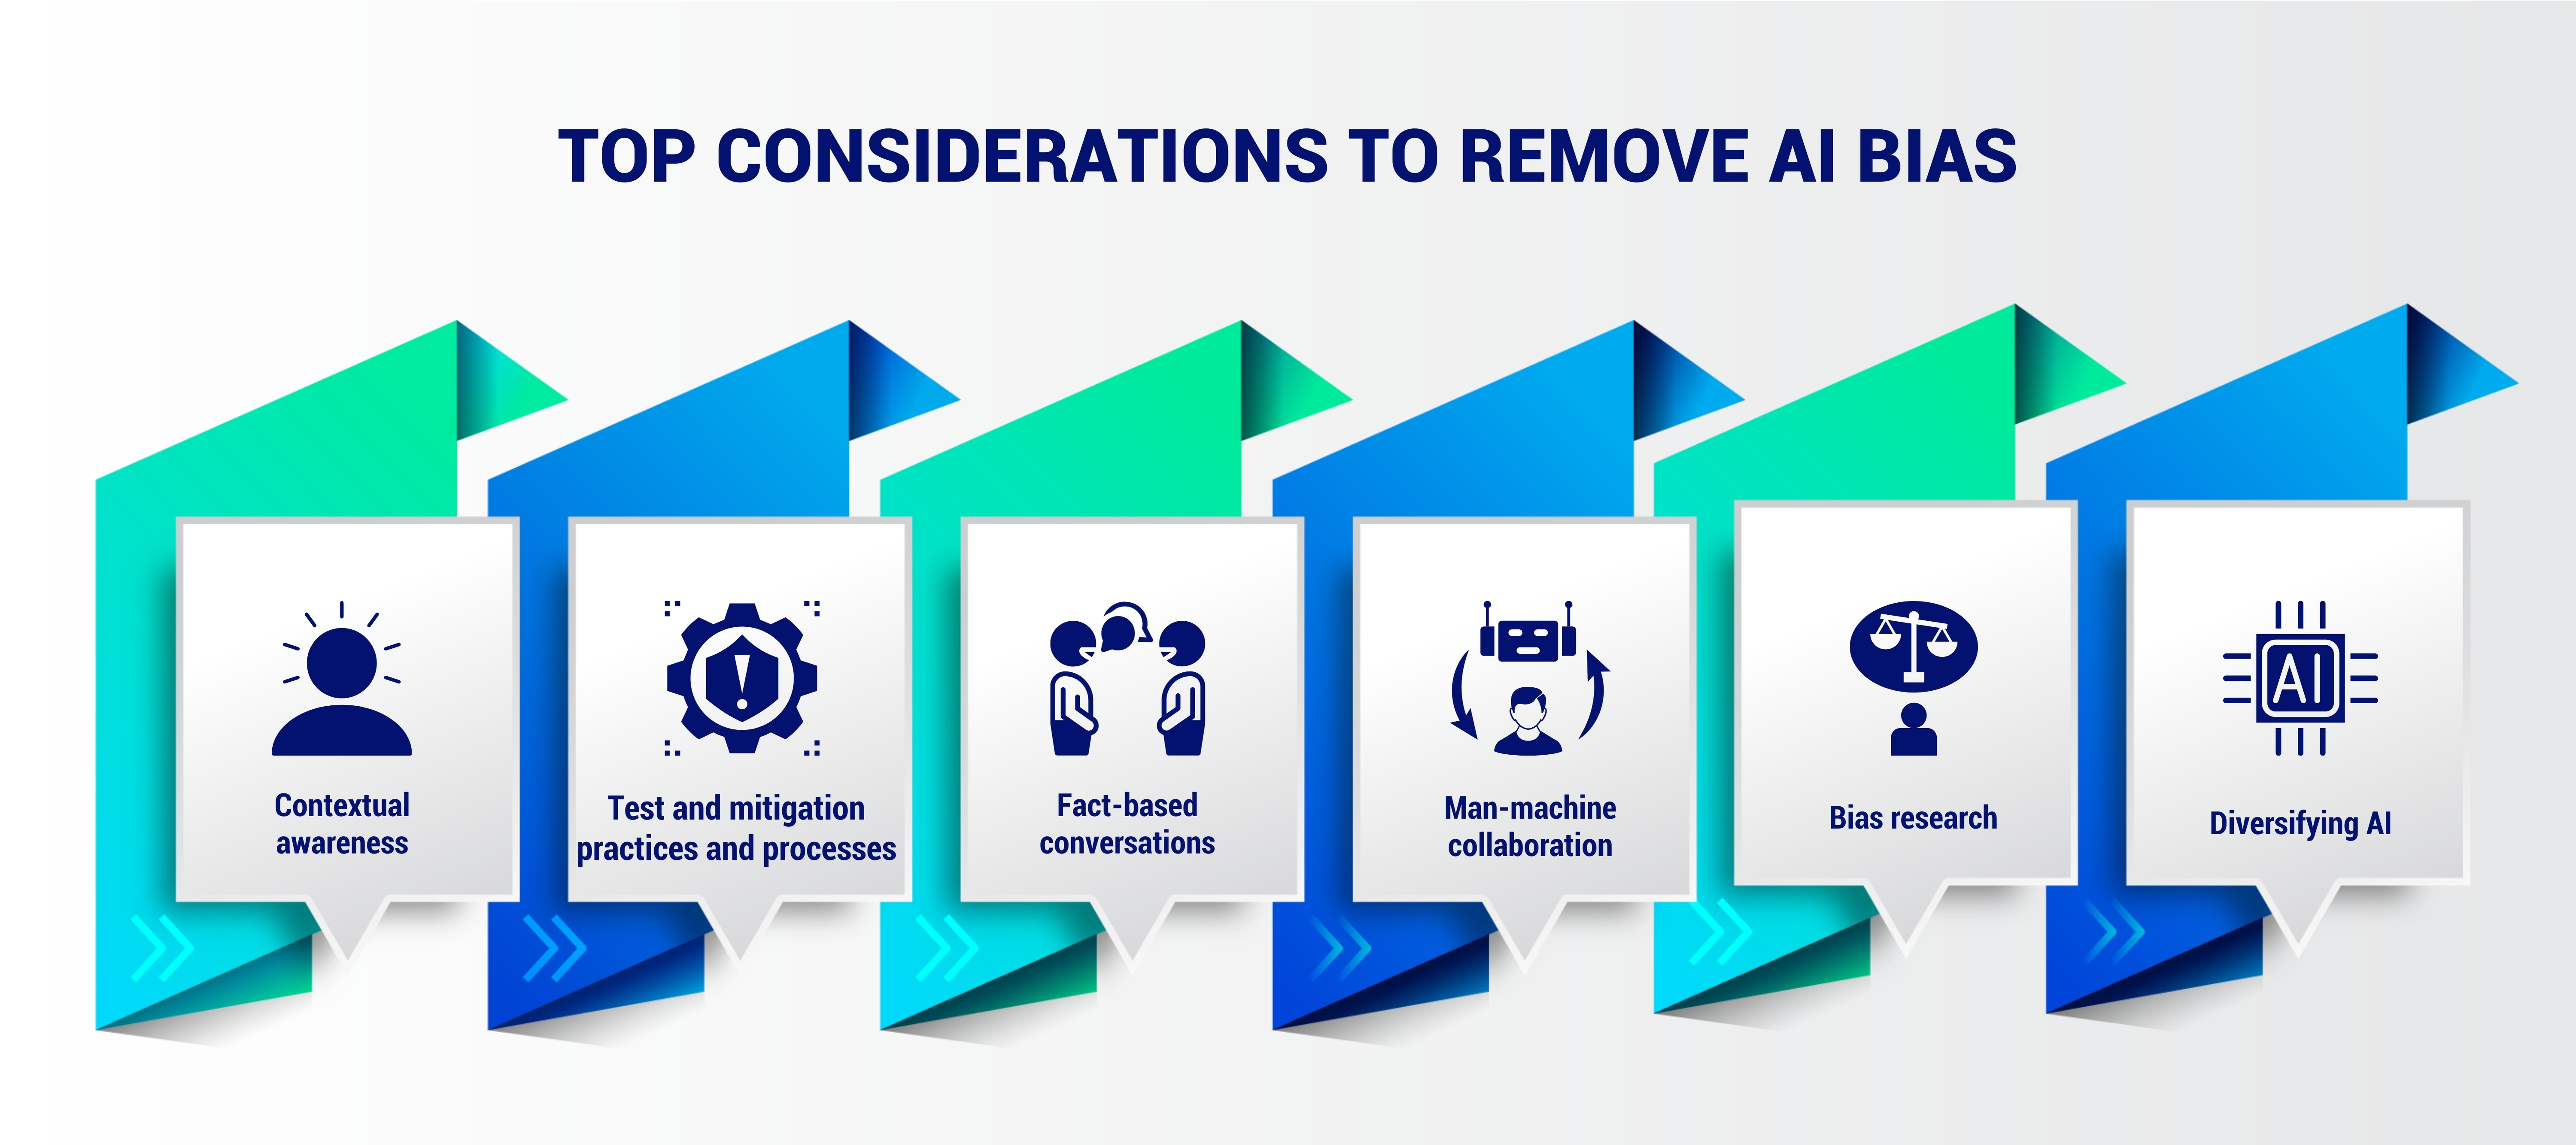 Top considerations to remove AI bias